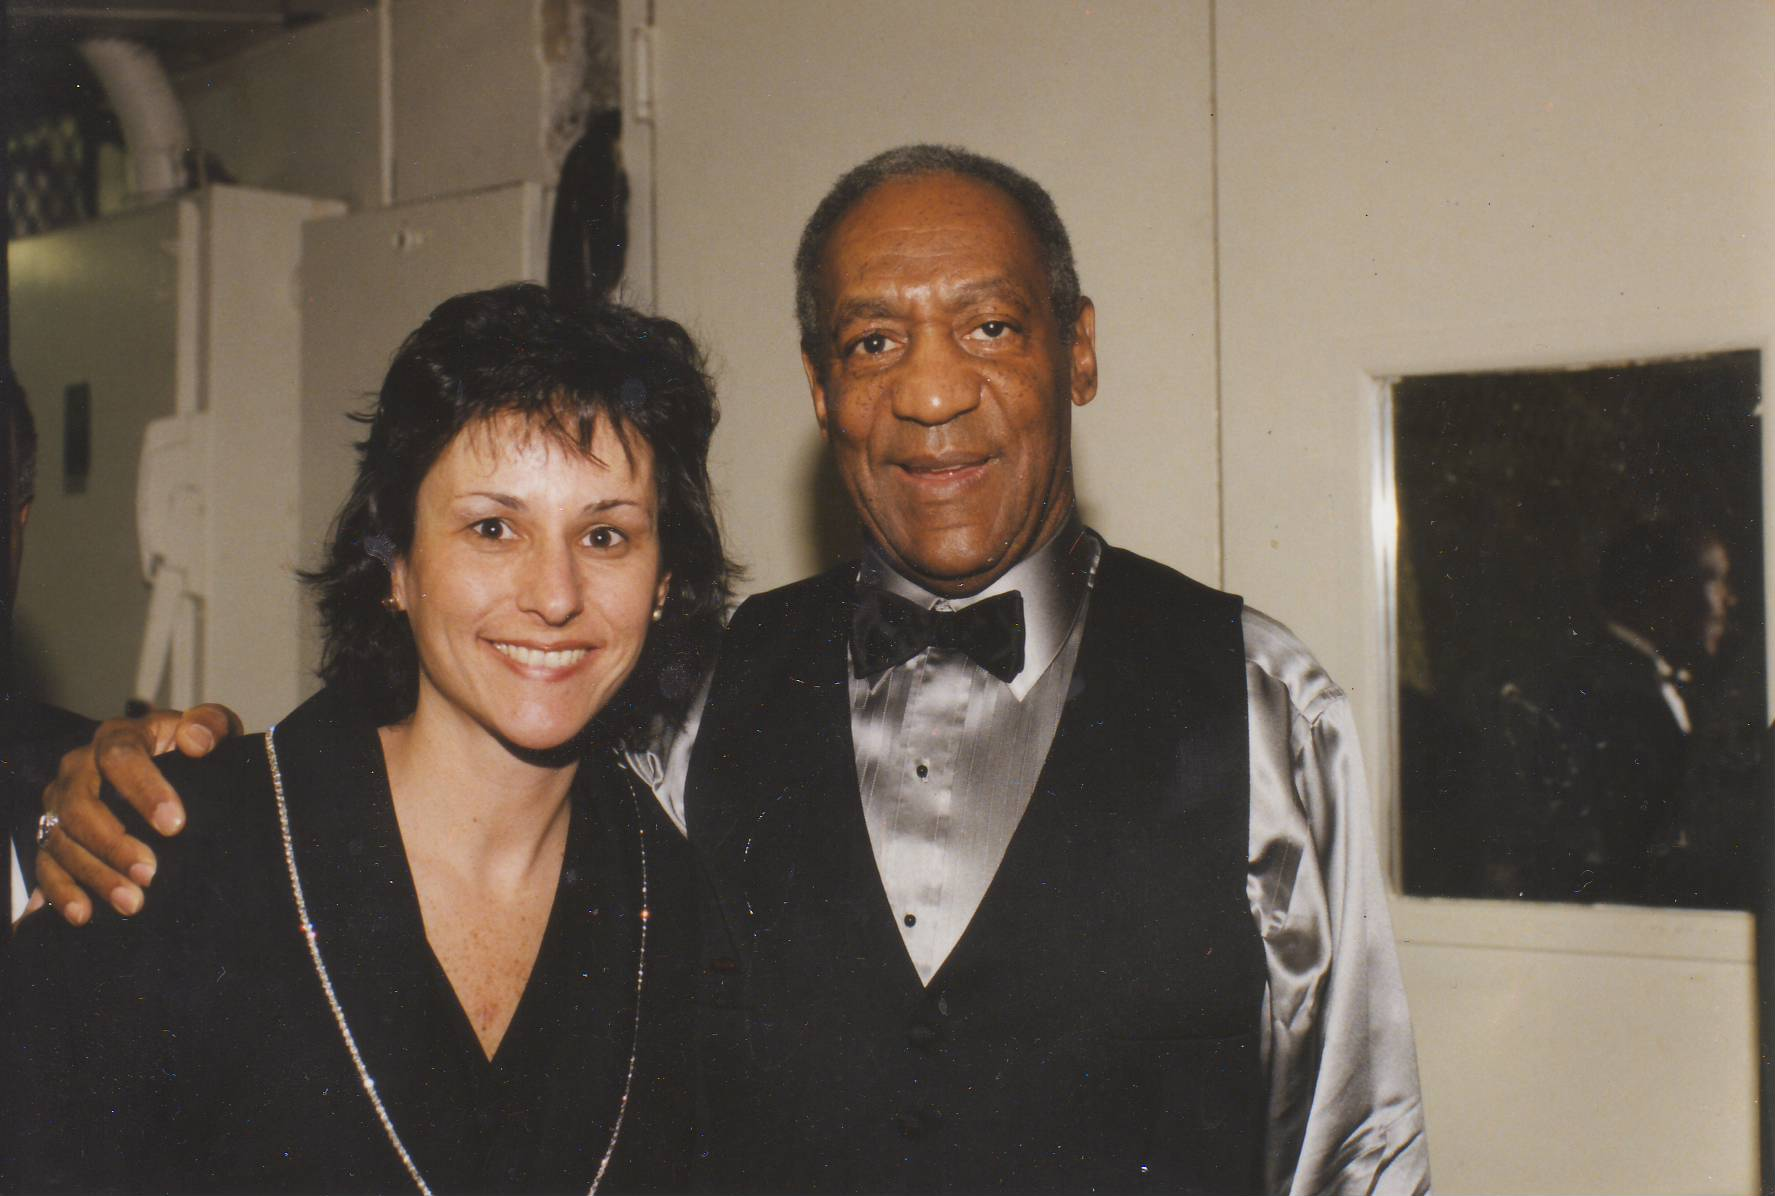 Bill cosby real family me and bill cosby 2001